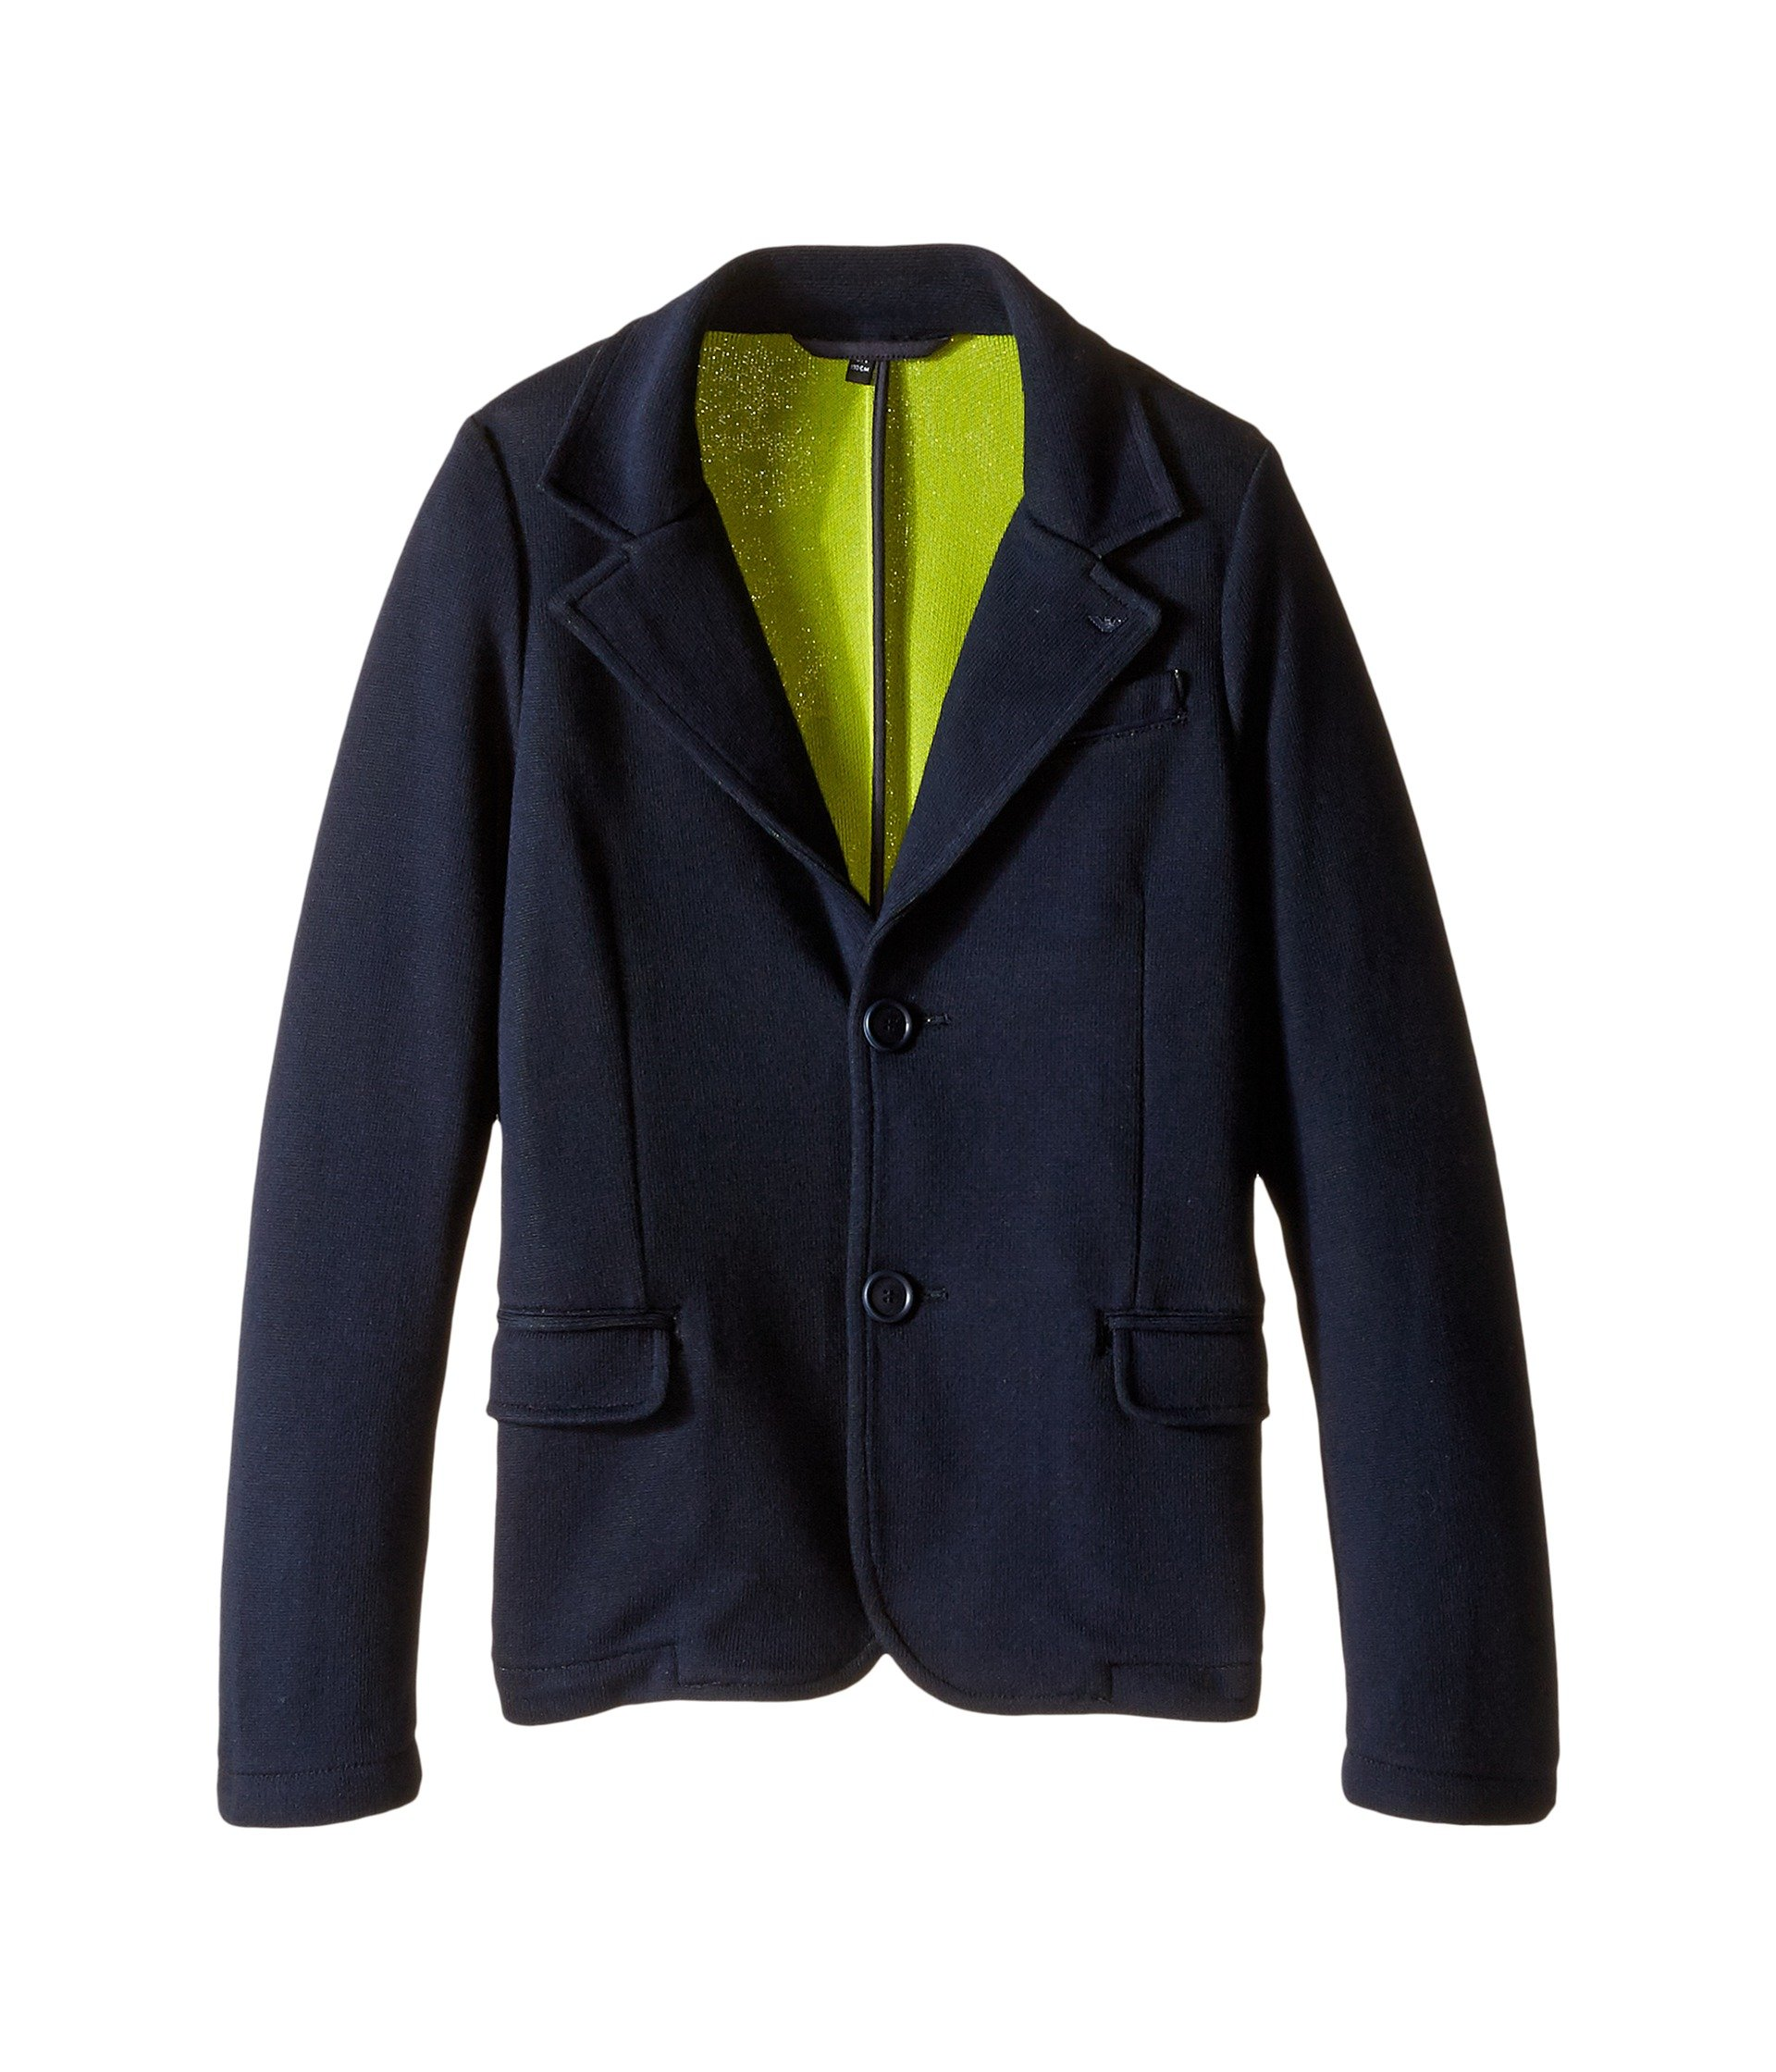 Armani Junior Boys' Blazer with Lime Detail (Toddler/Little), Navy, 8 Big Kids